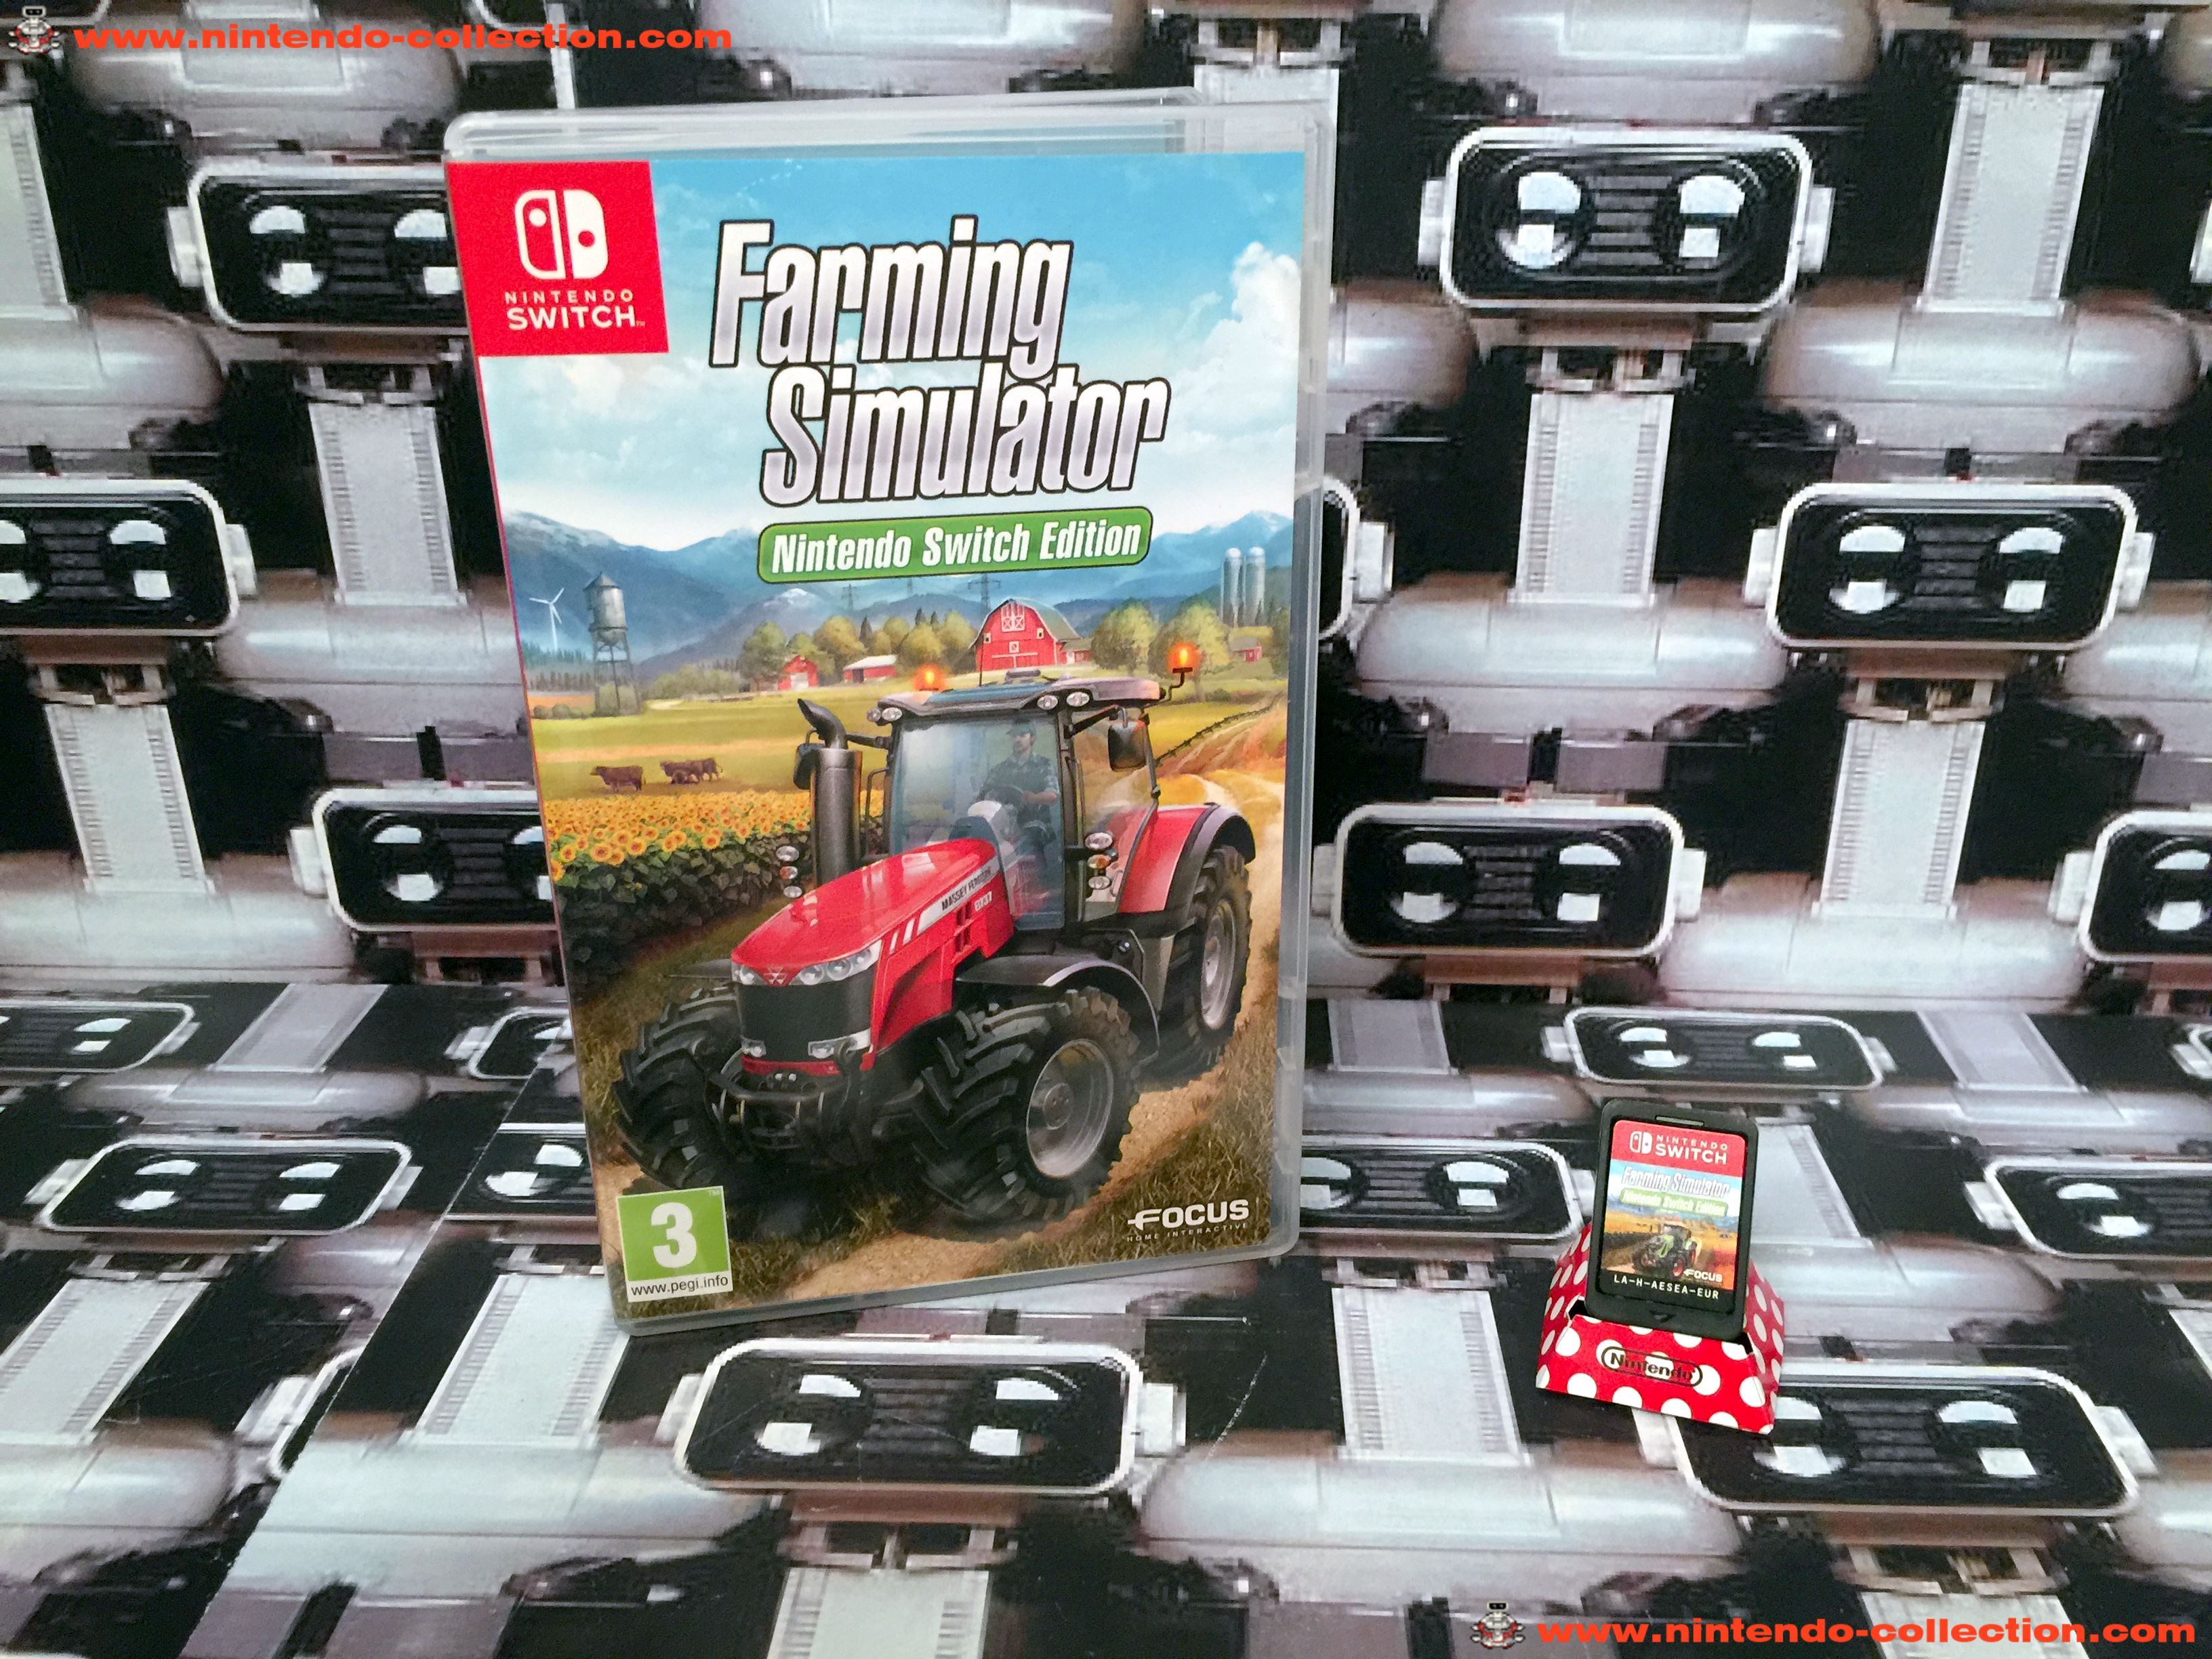 www.nintendo-collection.com - Nintendo Switch Jeux Farming Simulator Nintendo Switch Edition